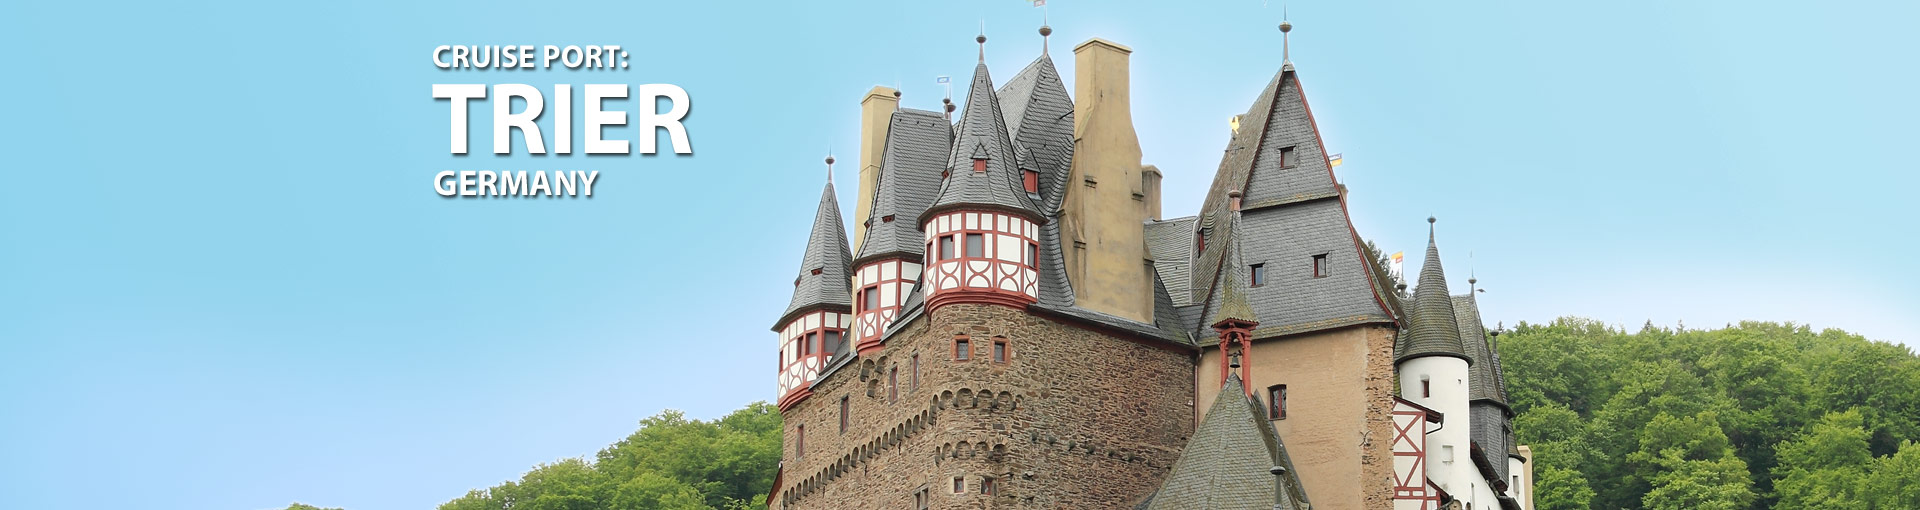 Cruises from Trier, Germany